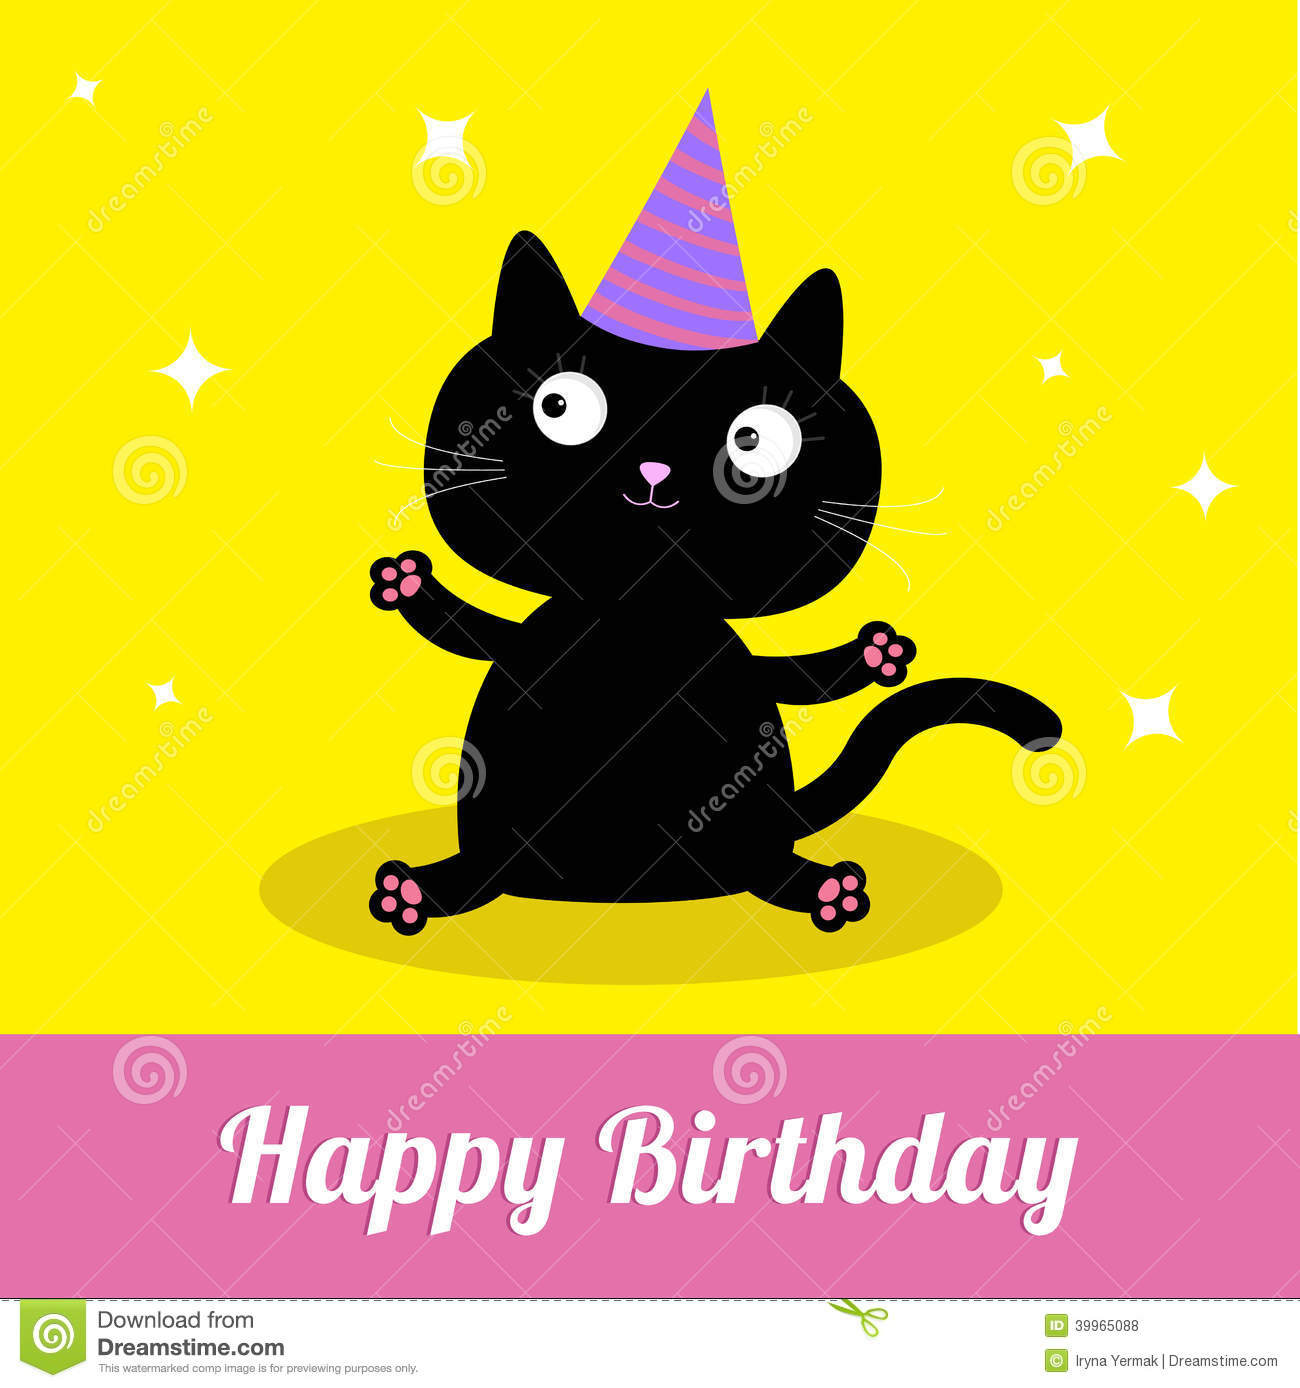 Cute Cartoon Black Cat With Hat Happy Birthday Party Card